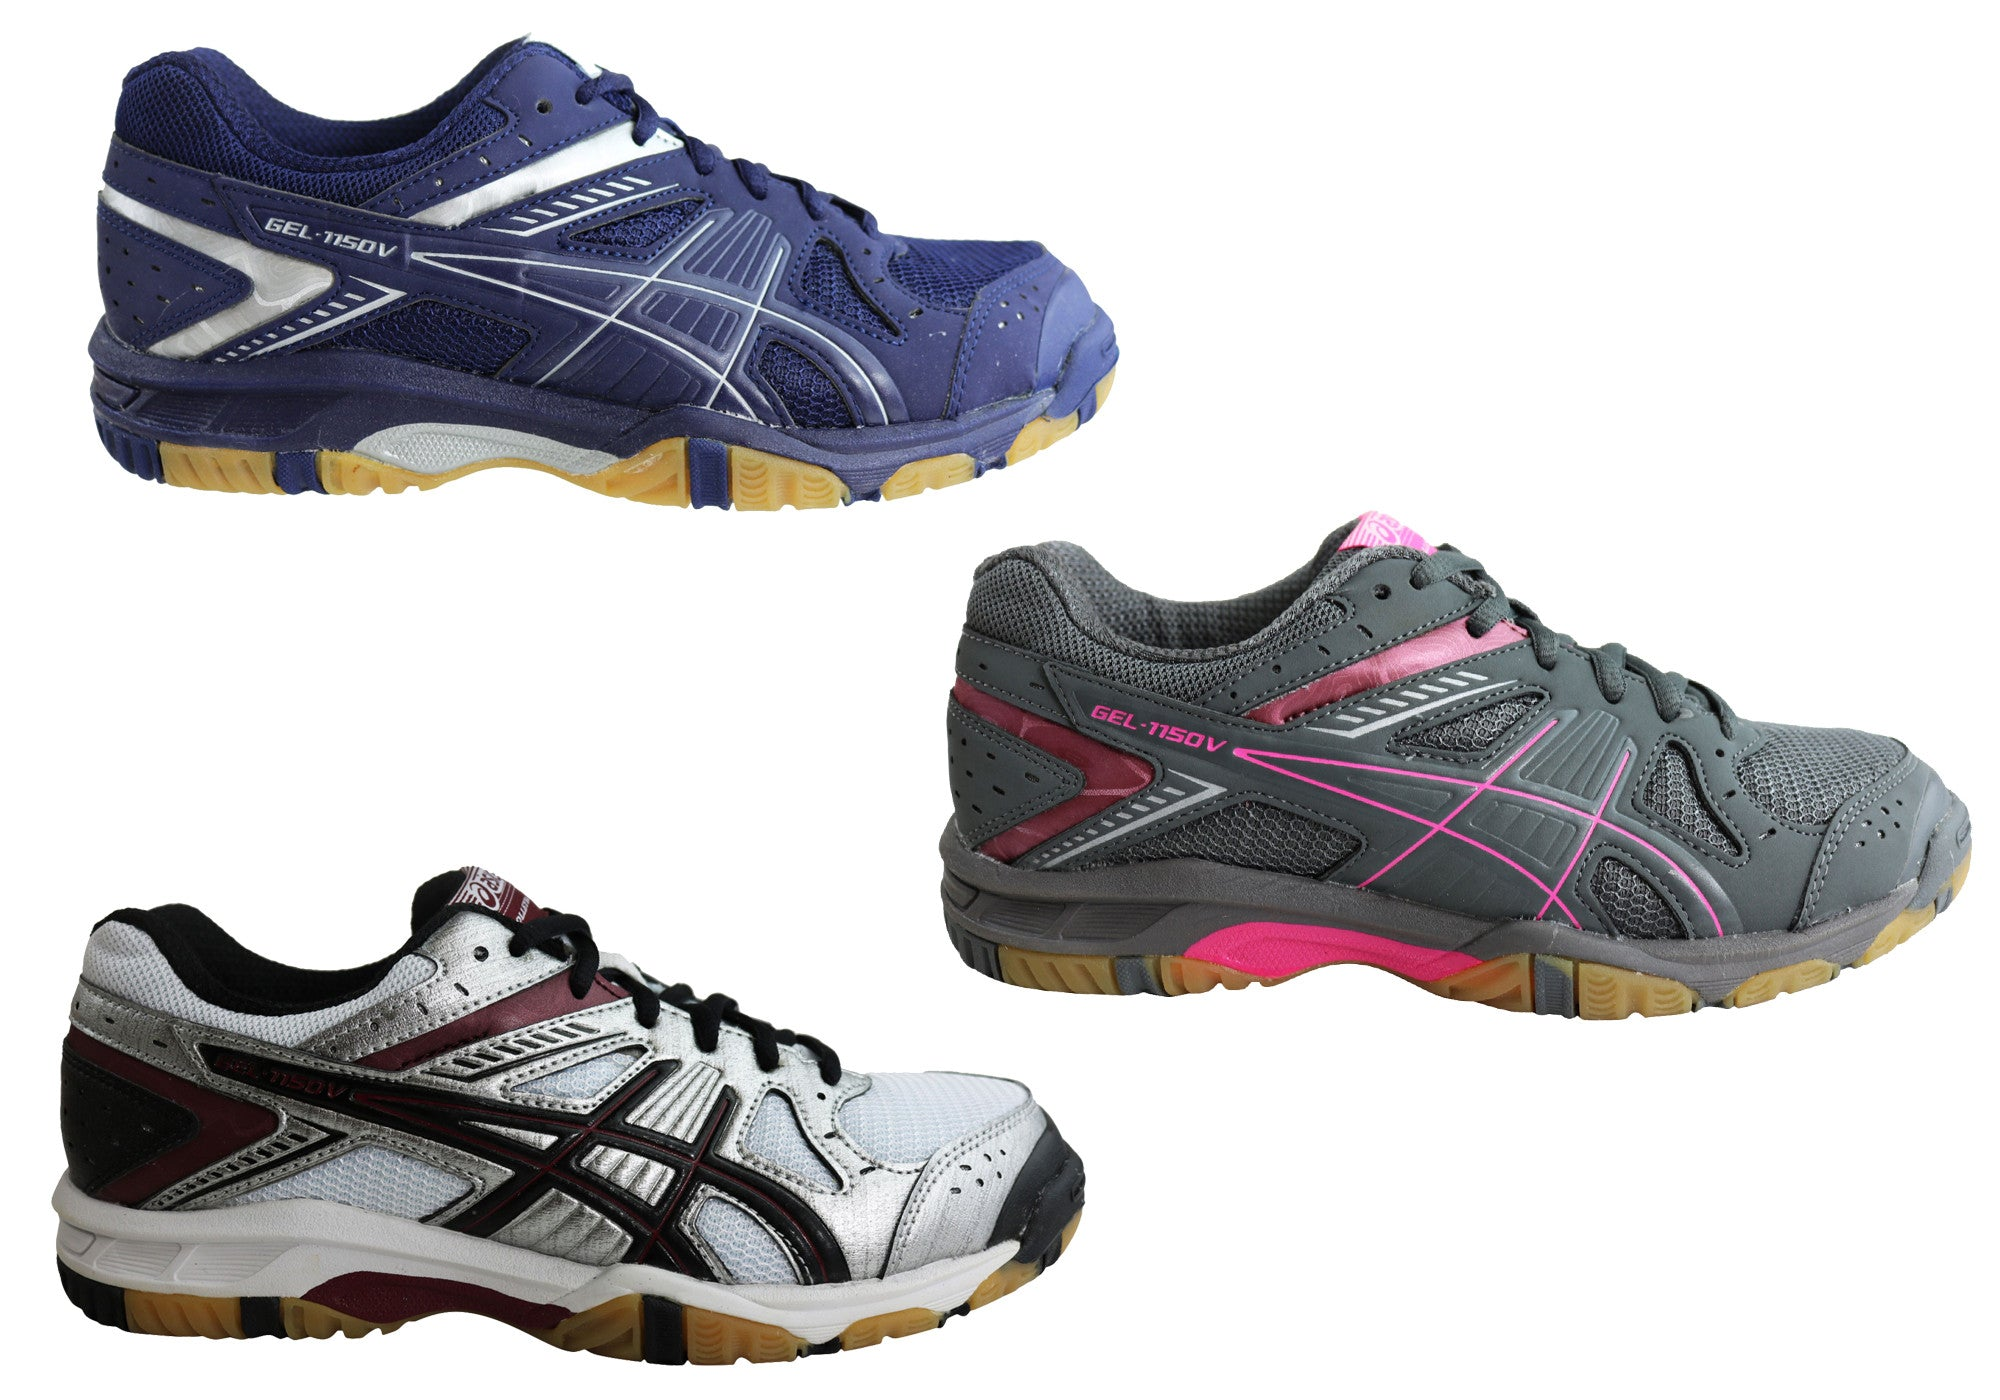 mizuno womens volleyball shoes size 8 x 2 inches video quizlet